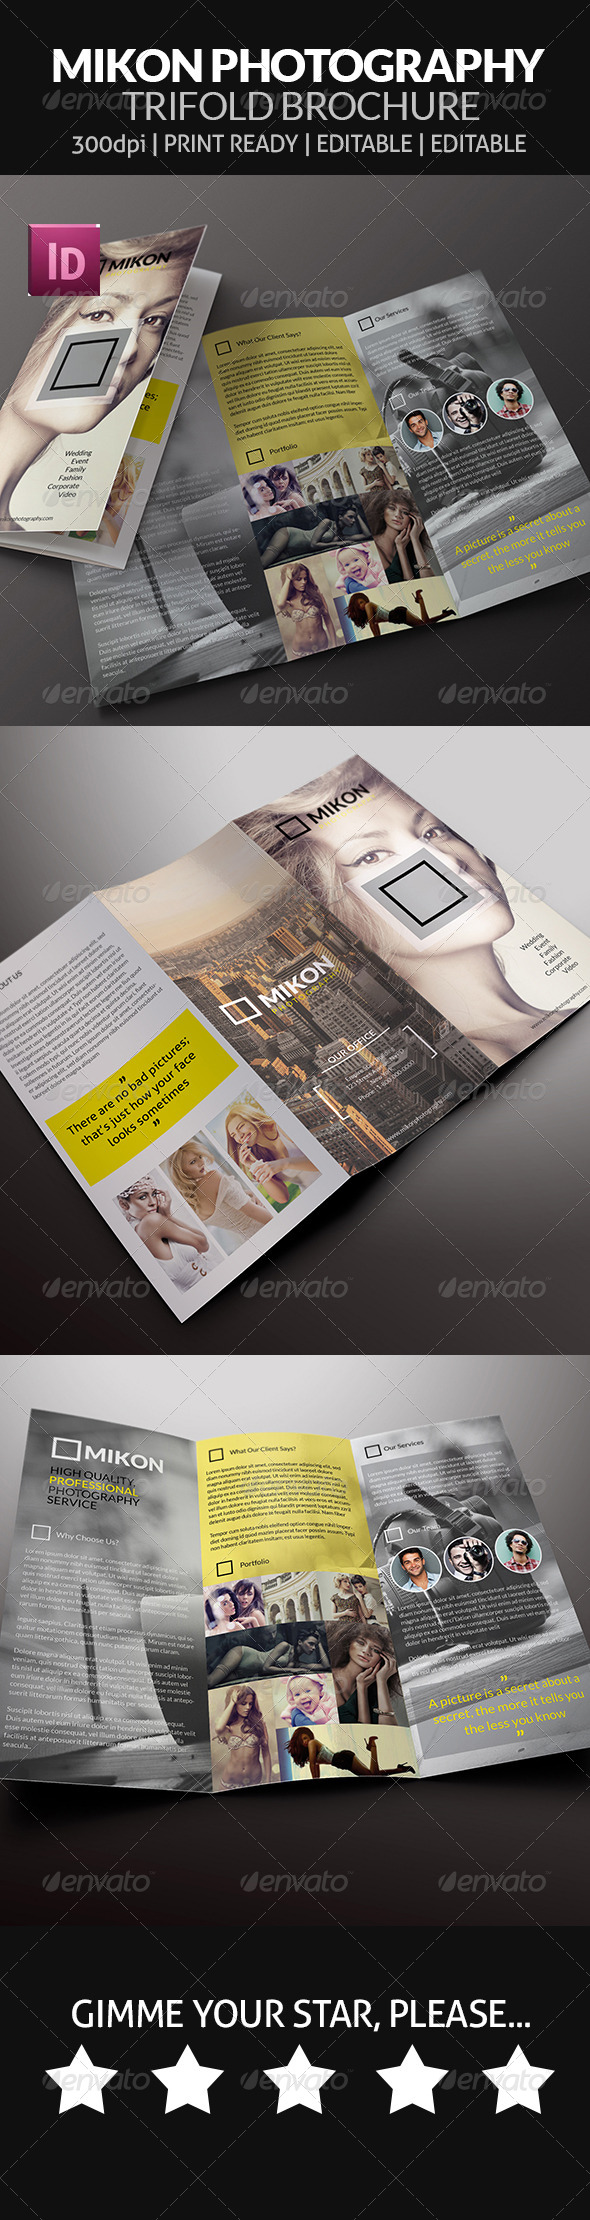 GraphicRiver Mikon Photography Trifold Brochure 7804191